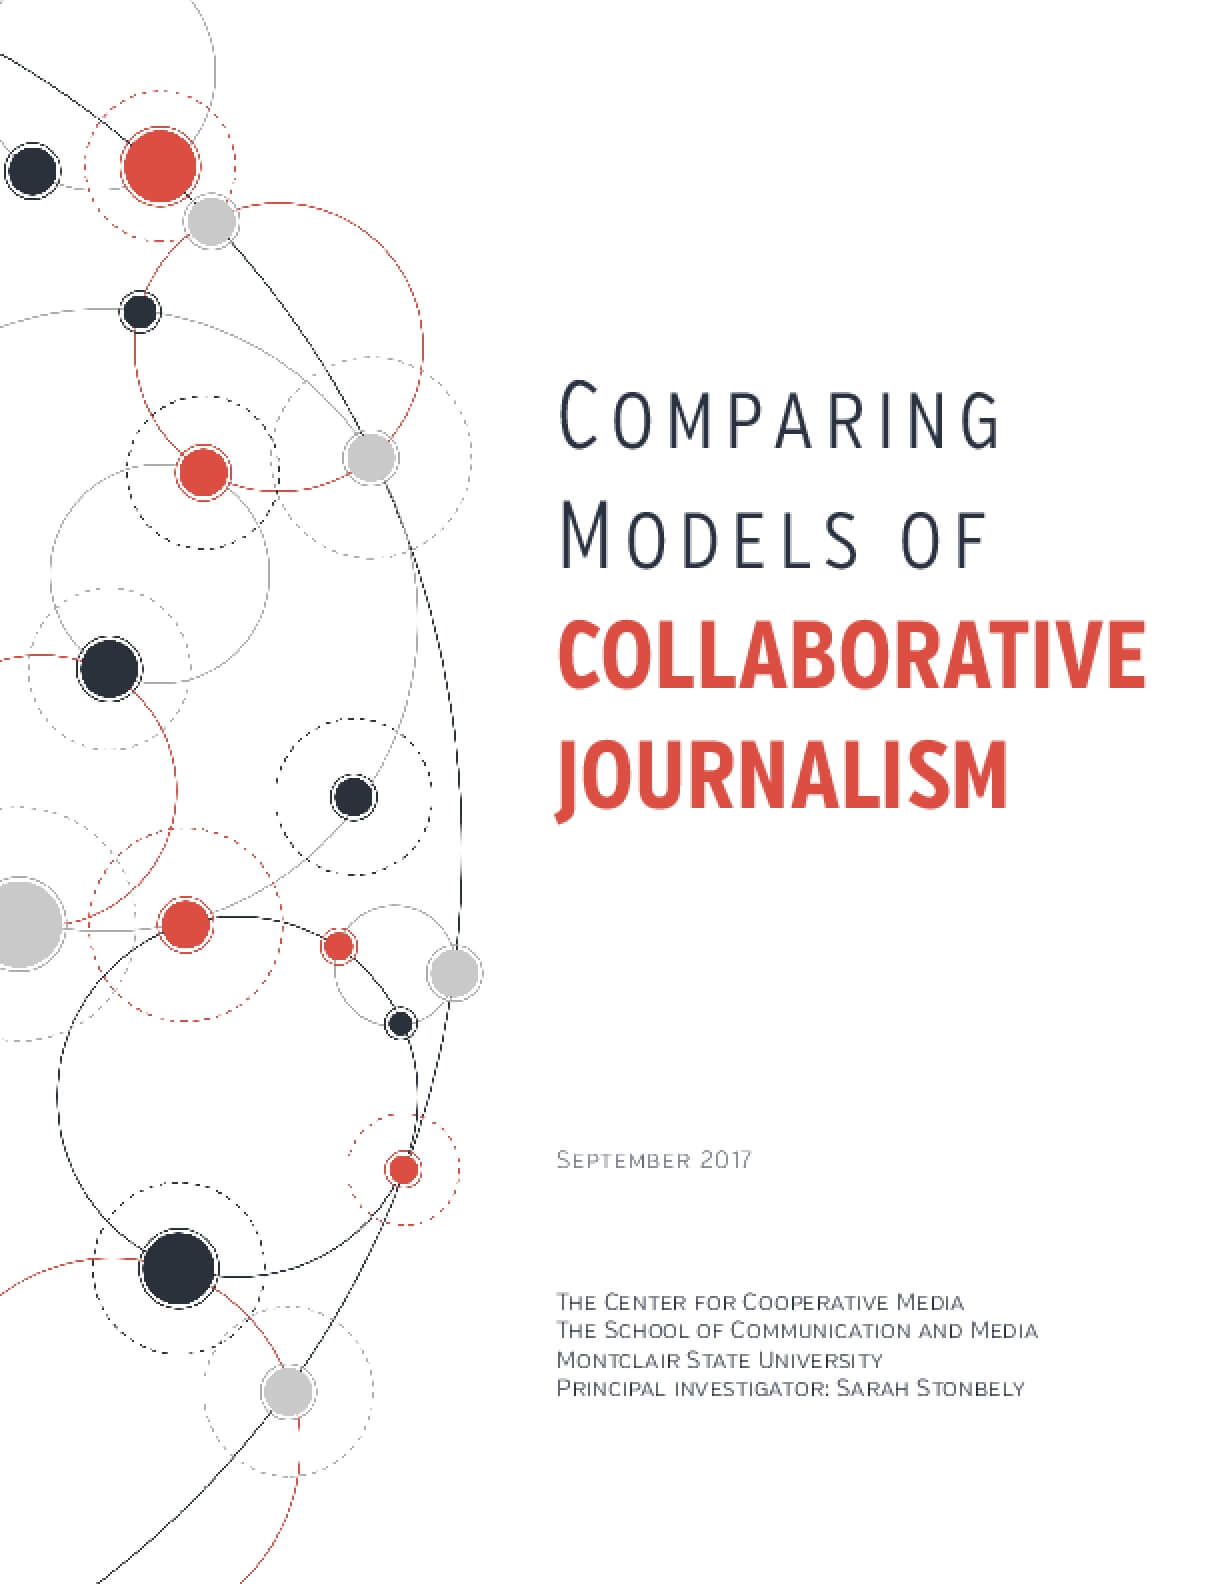 Comparing Models of Collaborative Journalism